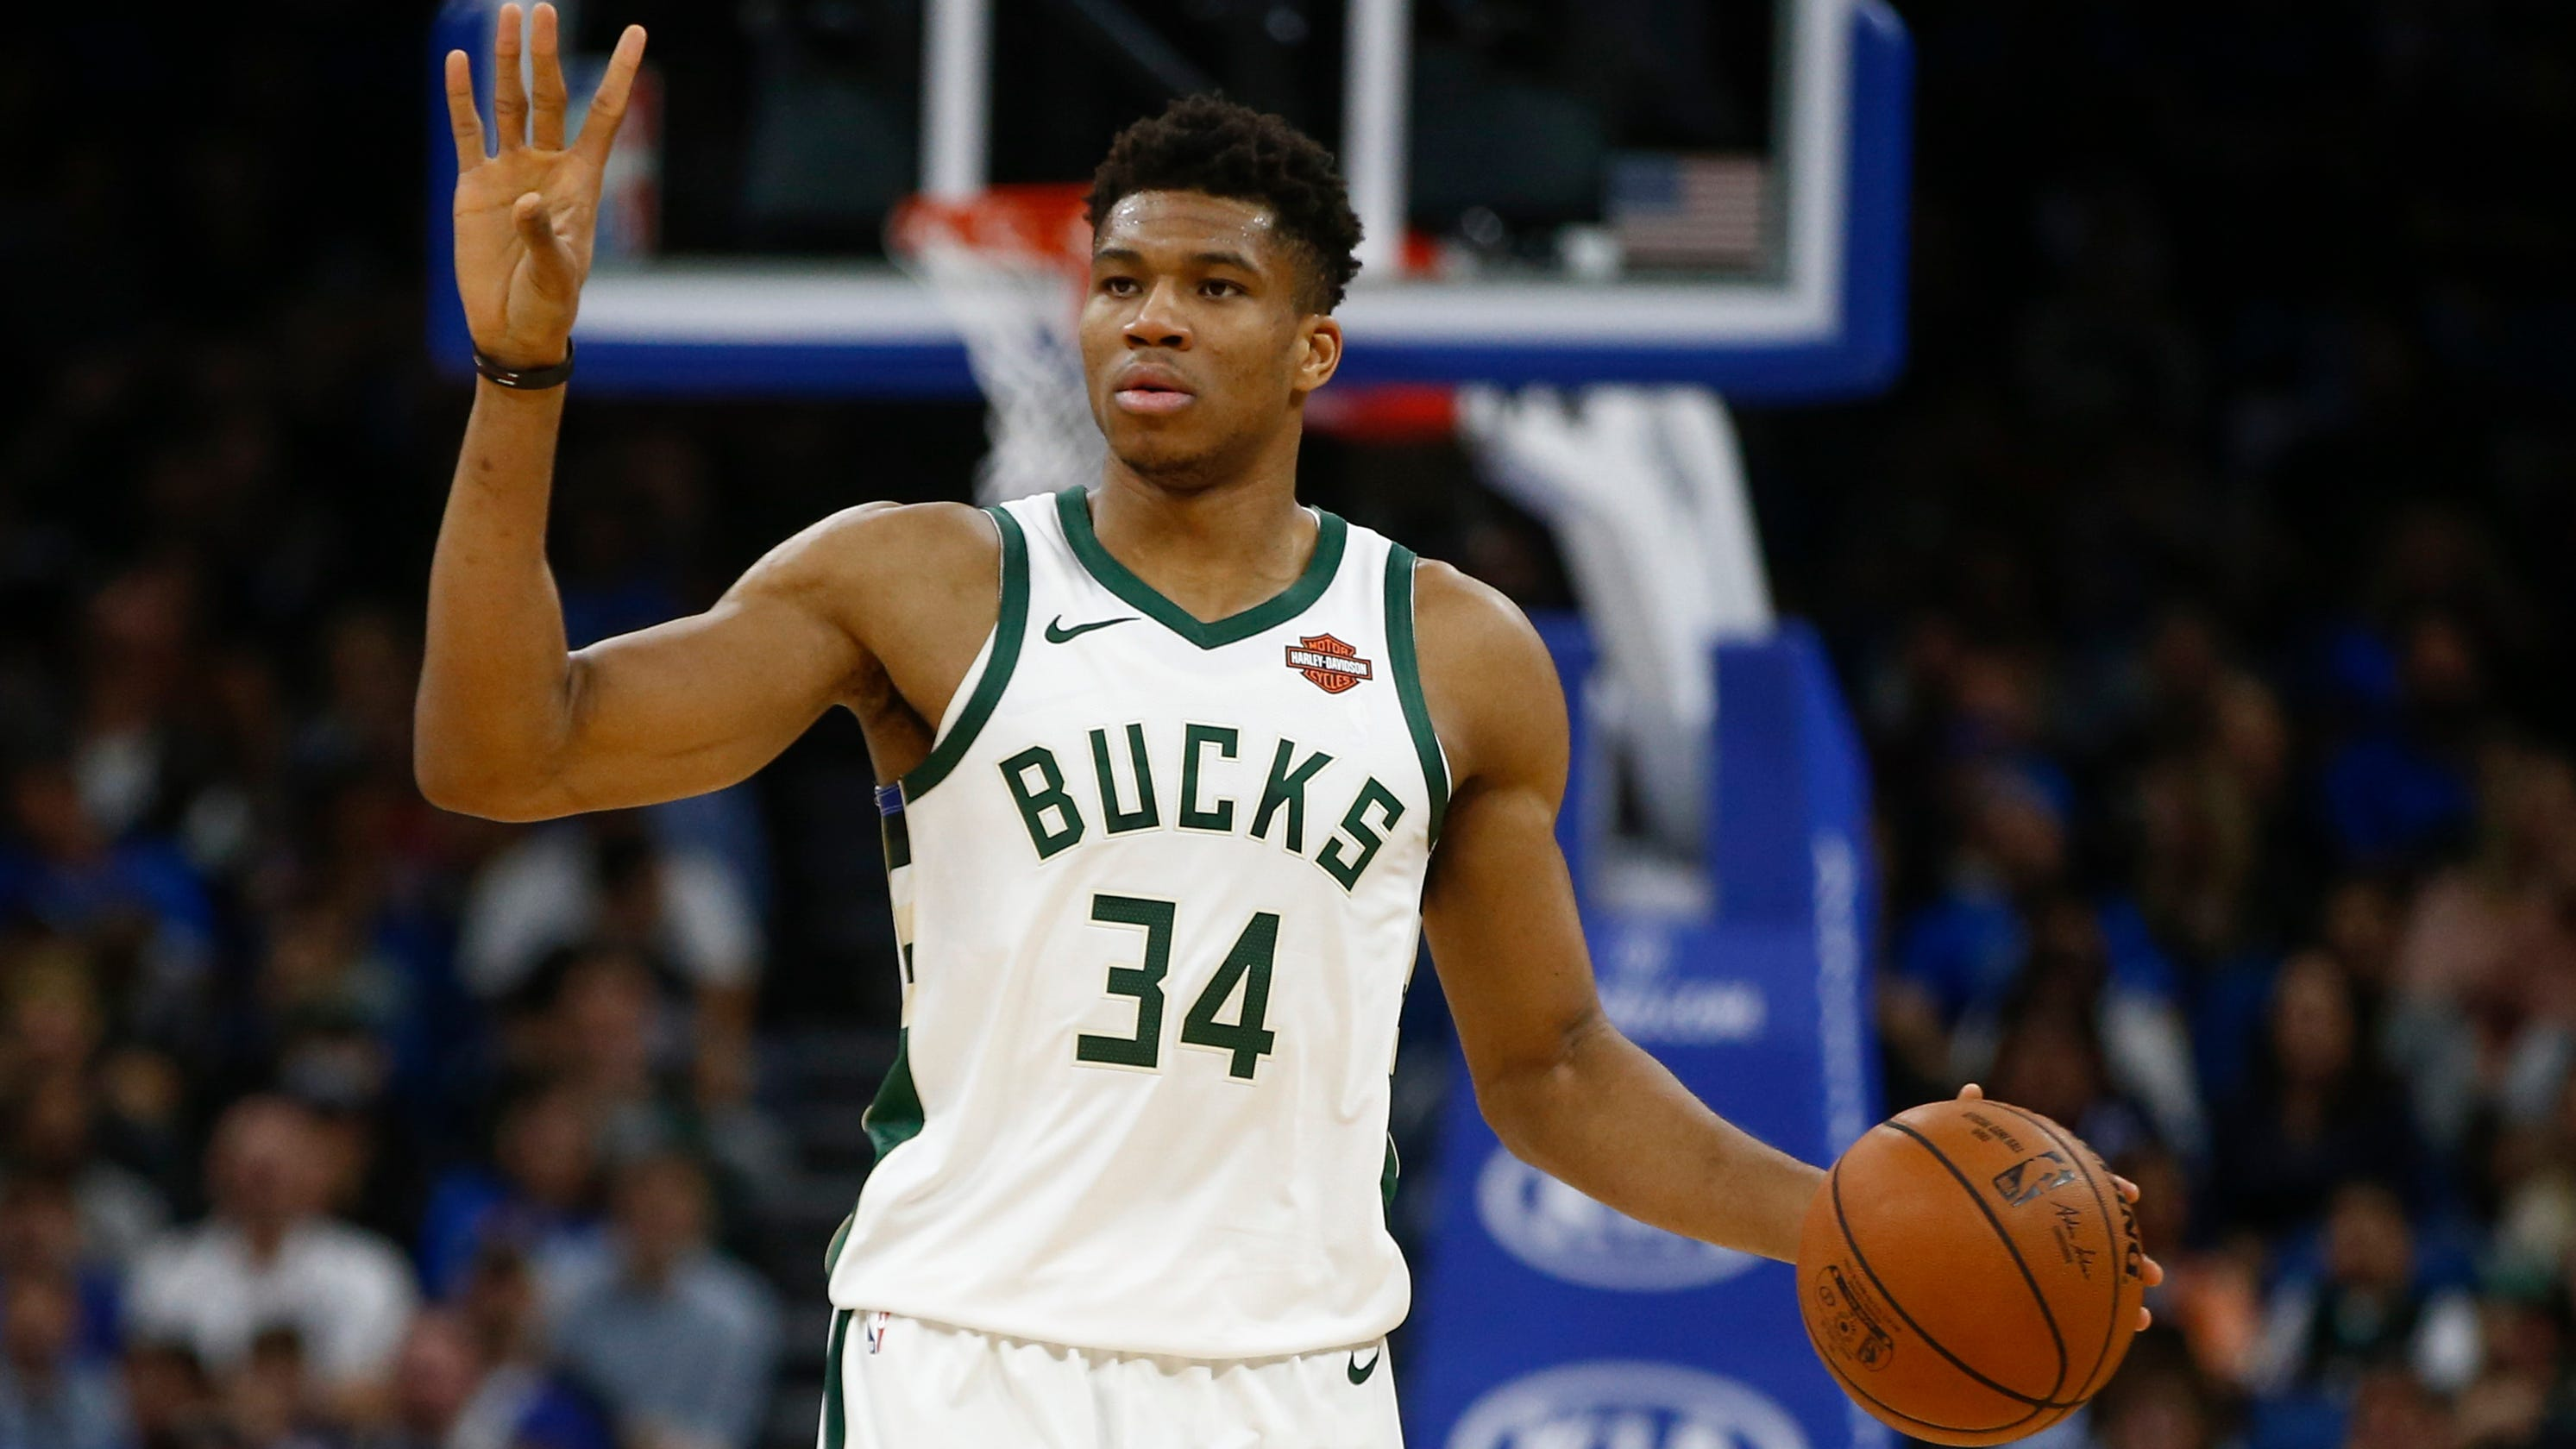 13 hip-hop songs that give Bucks superstar Giannis Antetokounmpo a shout-out 04a7265ad